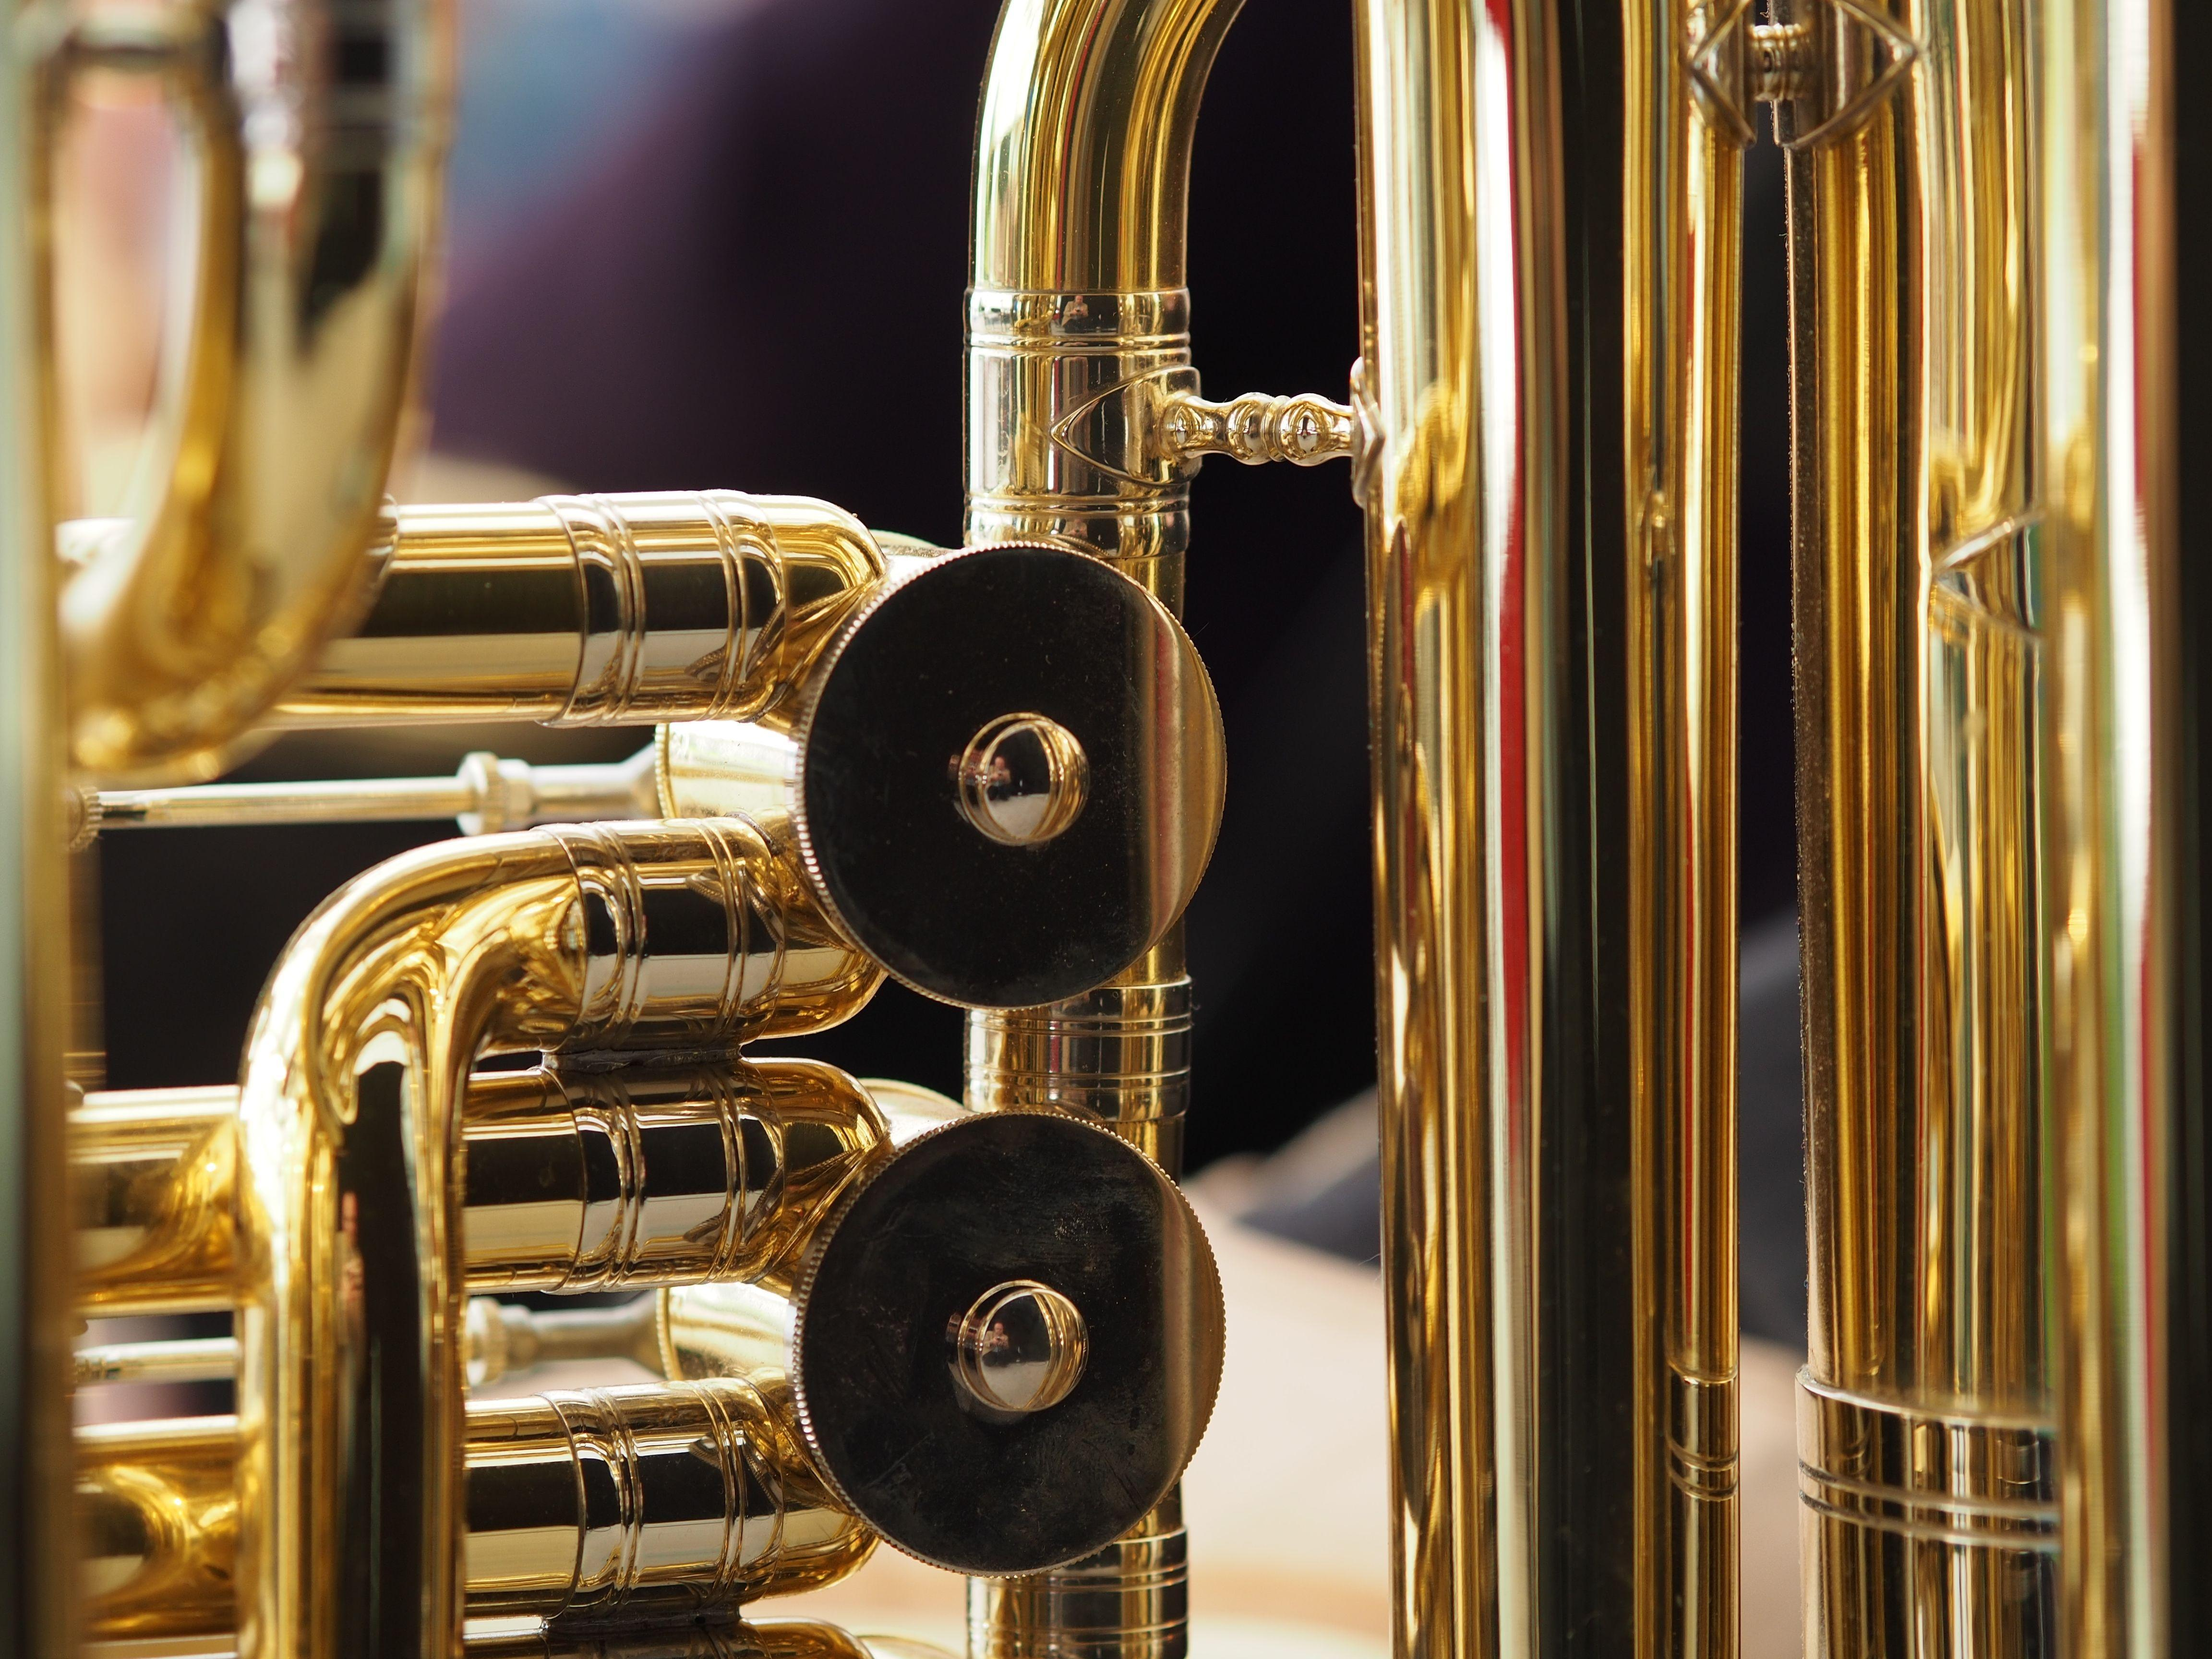 File:Brass instruments, Tuba, part of.jpg - Wikimedia Commons